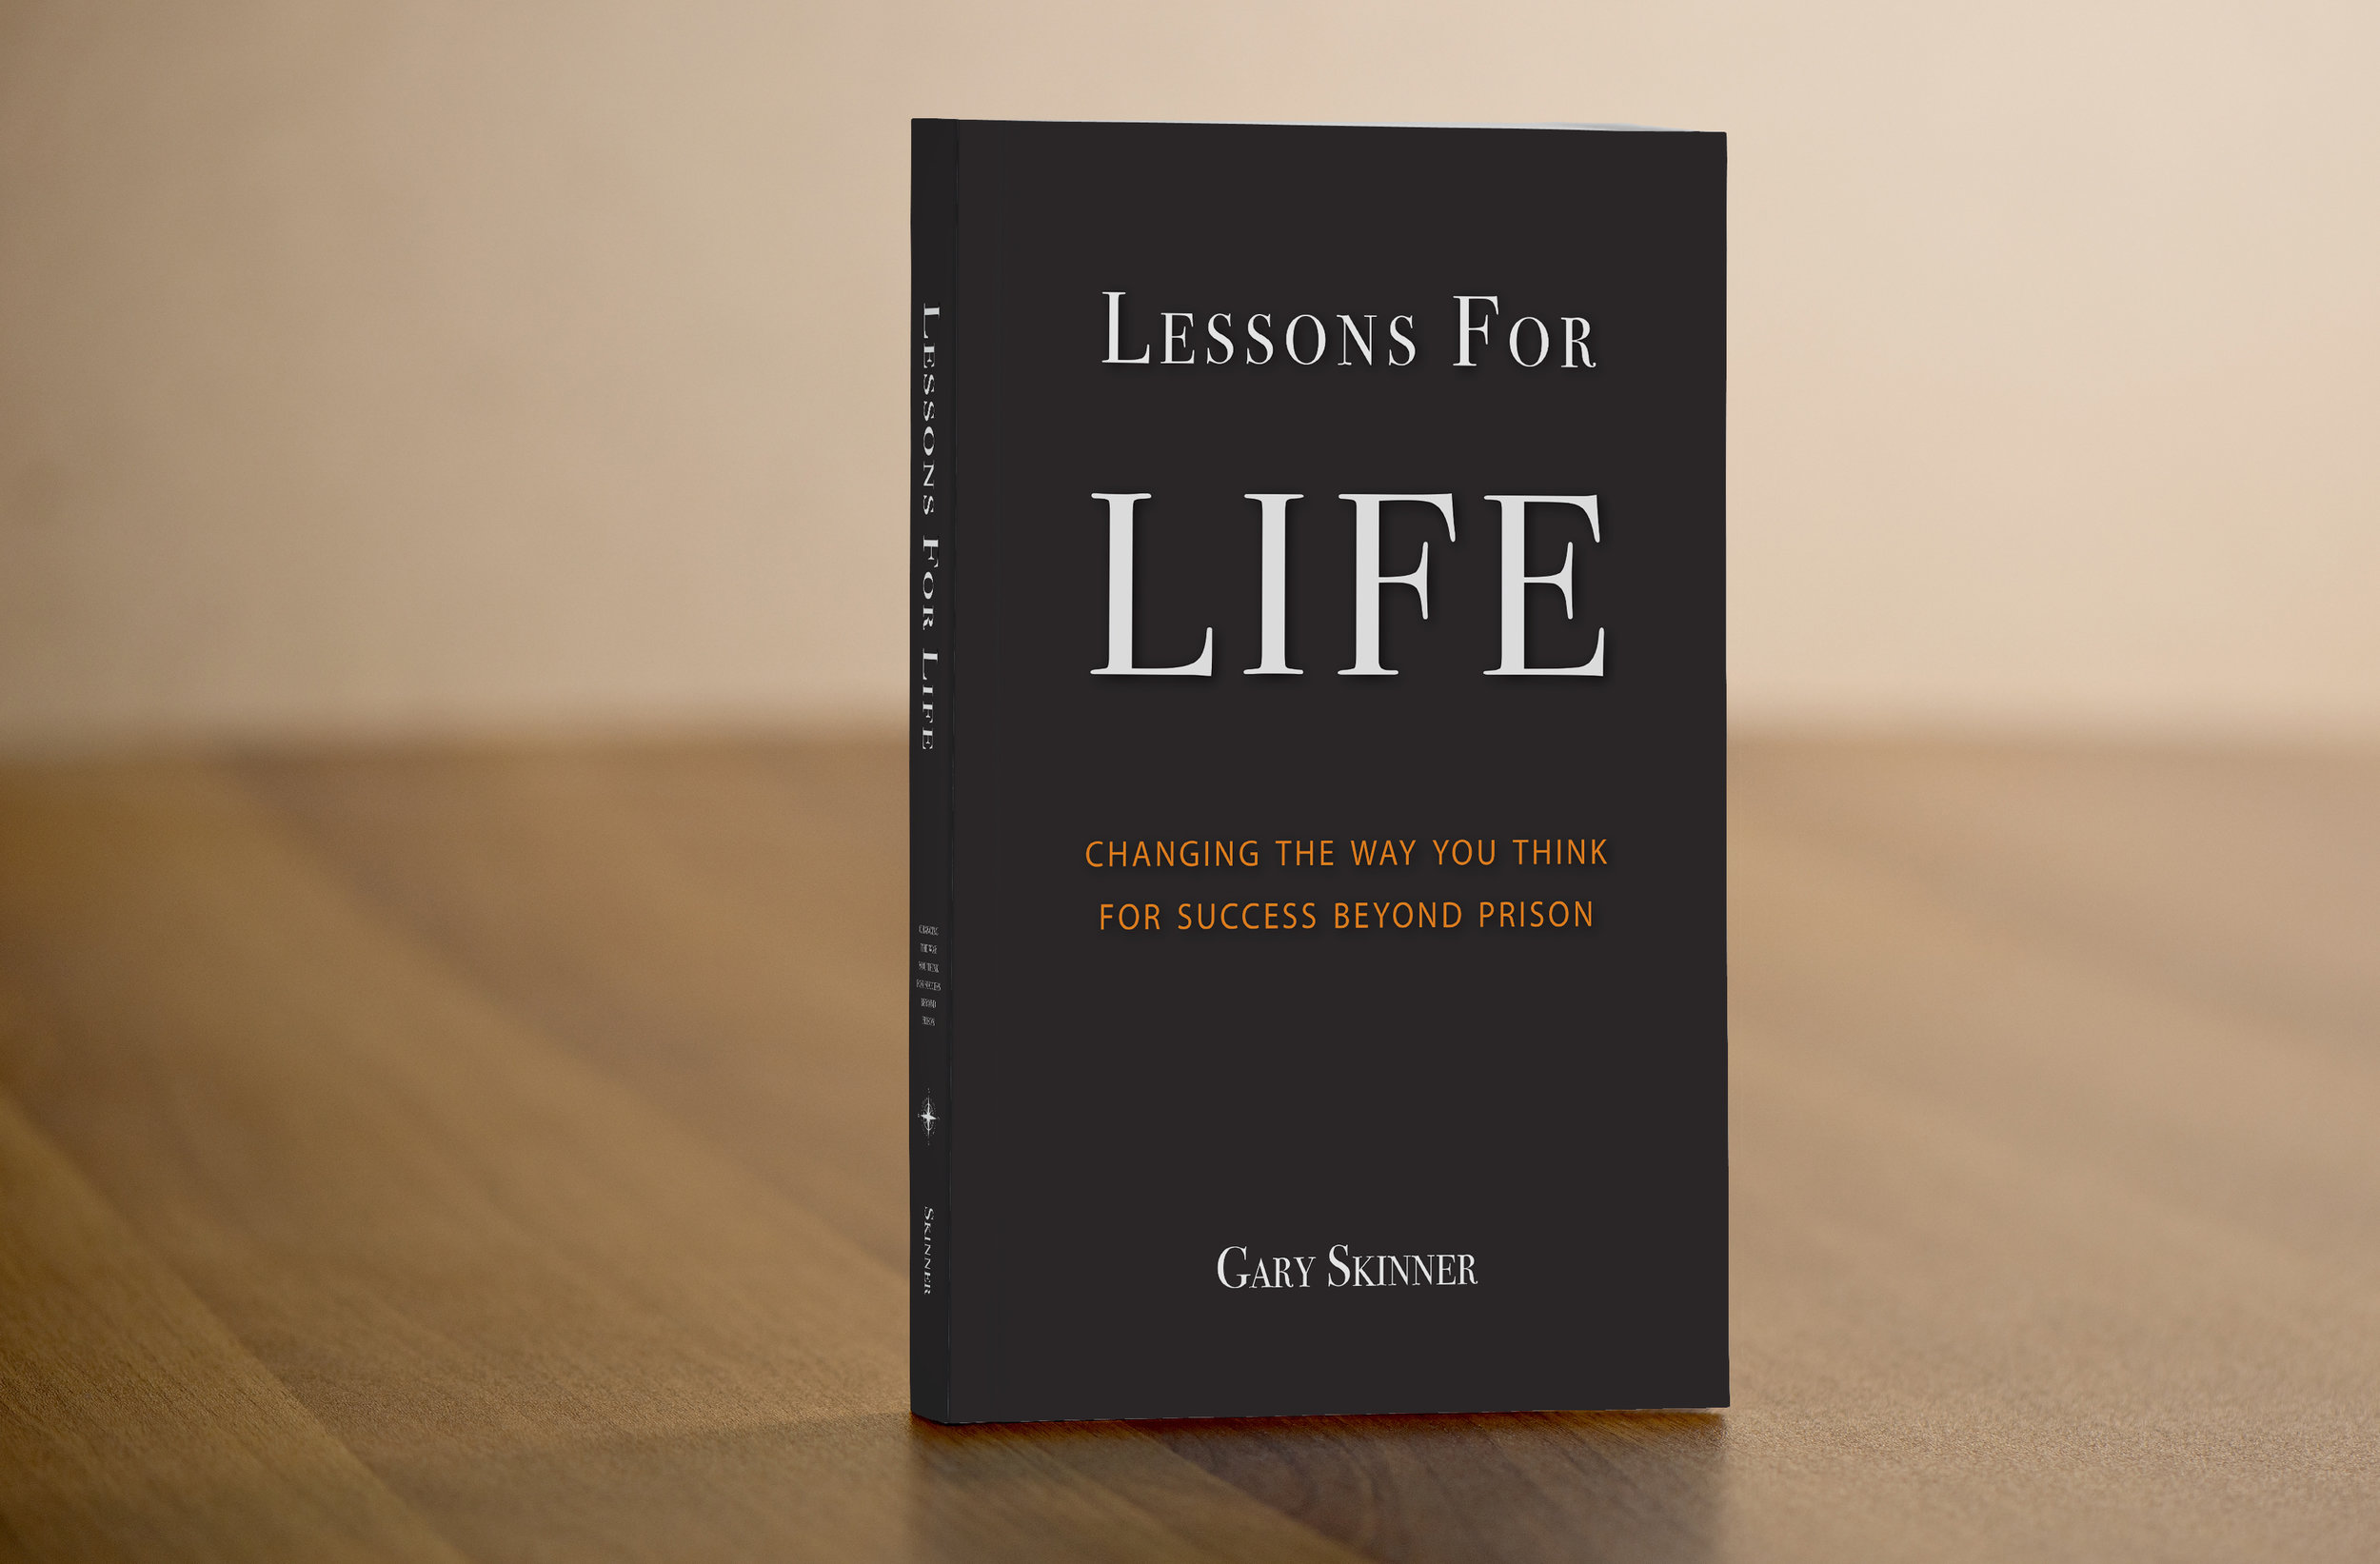 Lessons For Life Soft Cover Mockup.jpg